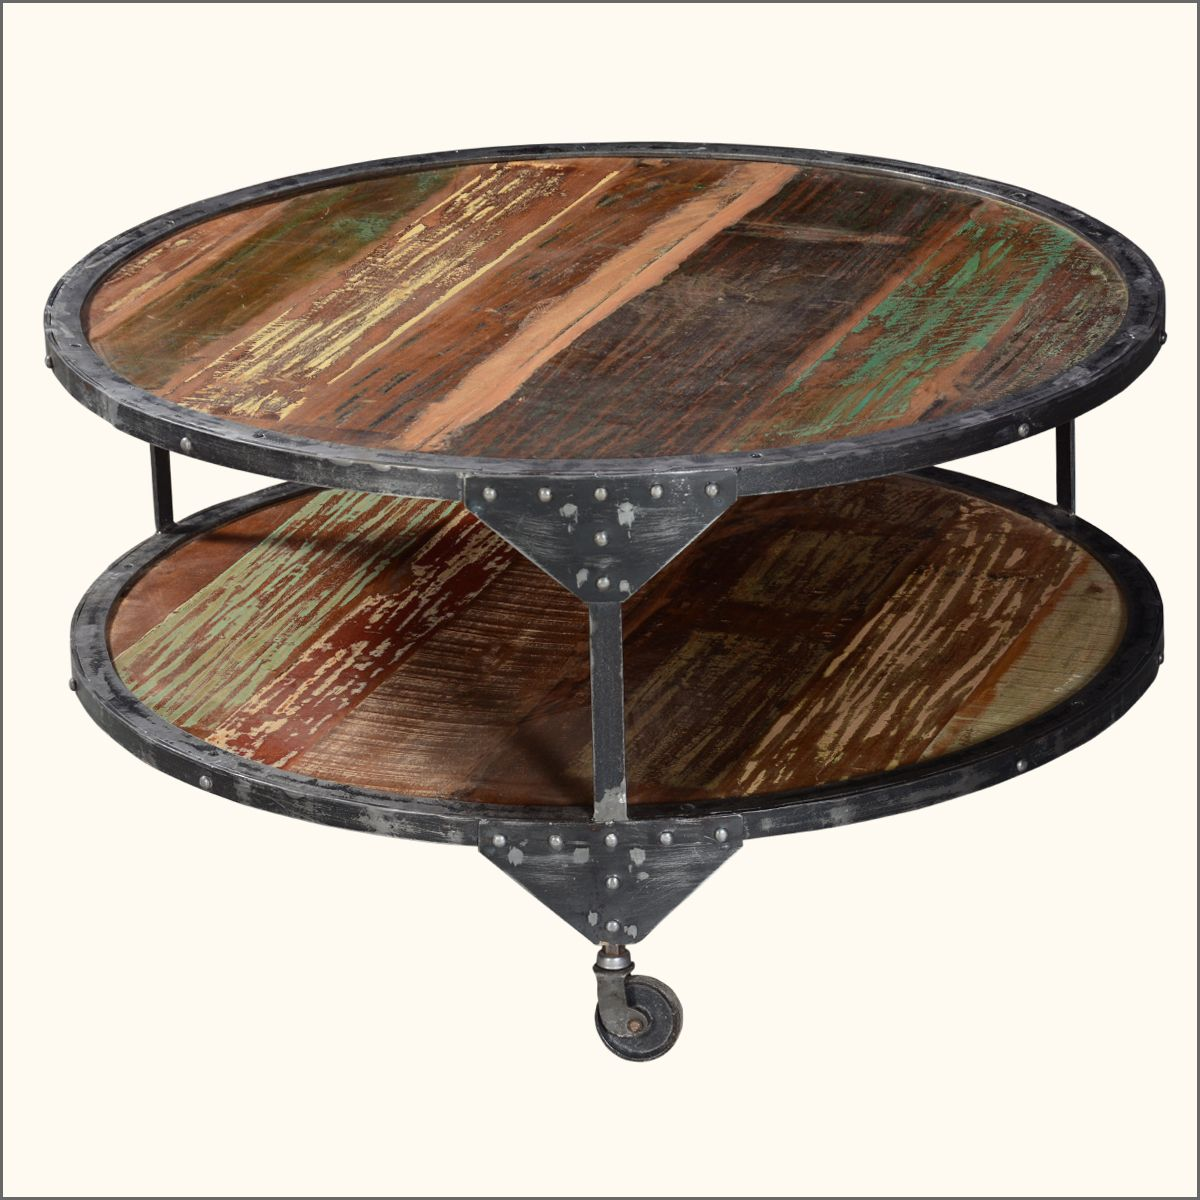 2 Tier Round Distressed Industrial Coffee Table Round Industrial Coffee Table Industrial Coffee Table Coffee Table Farmhouse [ 1200 x 1200 Pixel ]